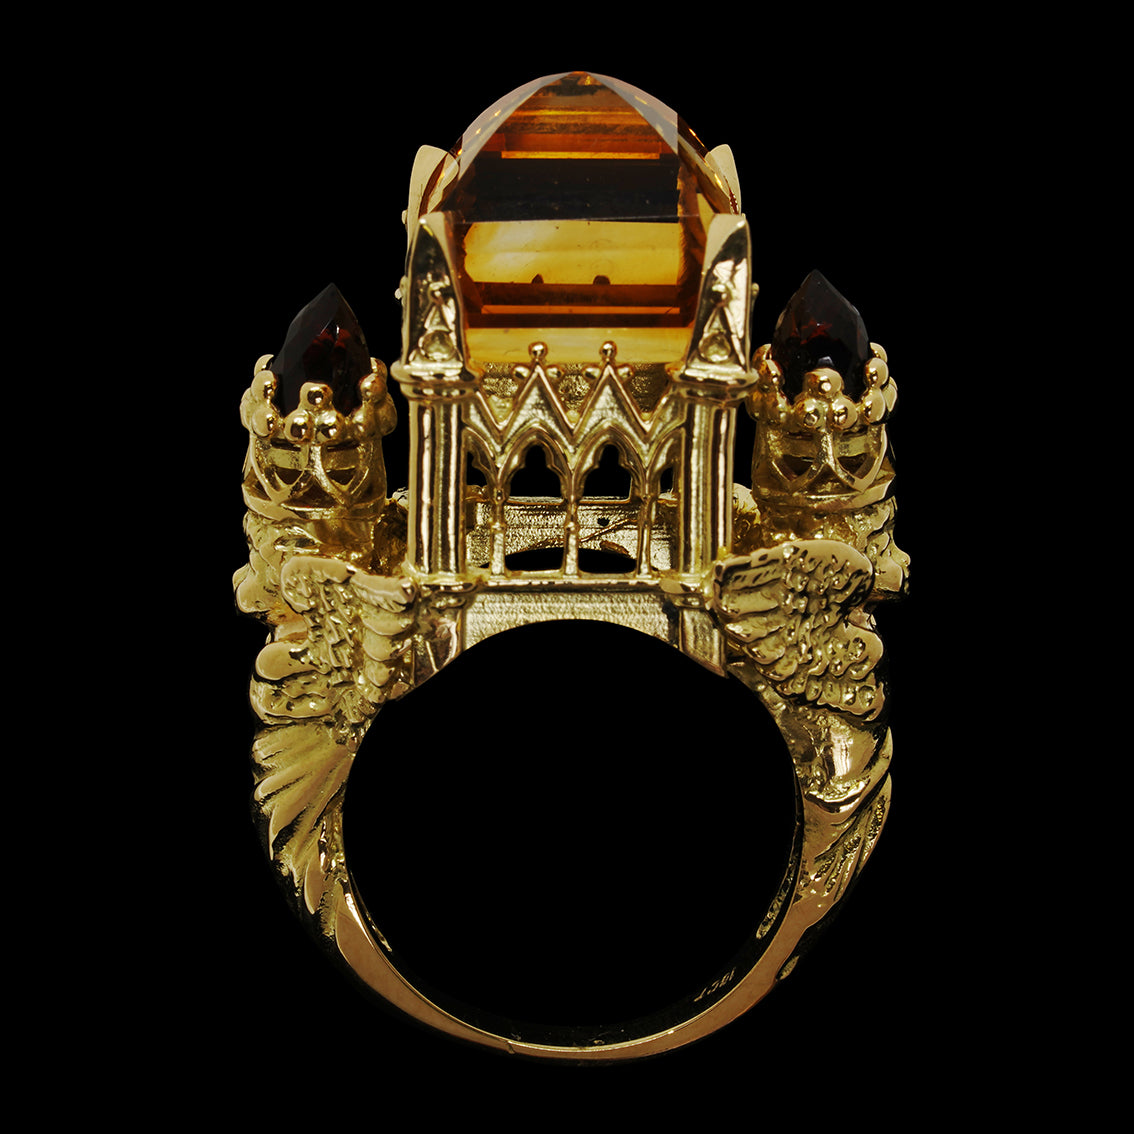 GOTHIC CATHEDRAL RING